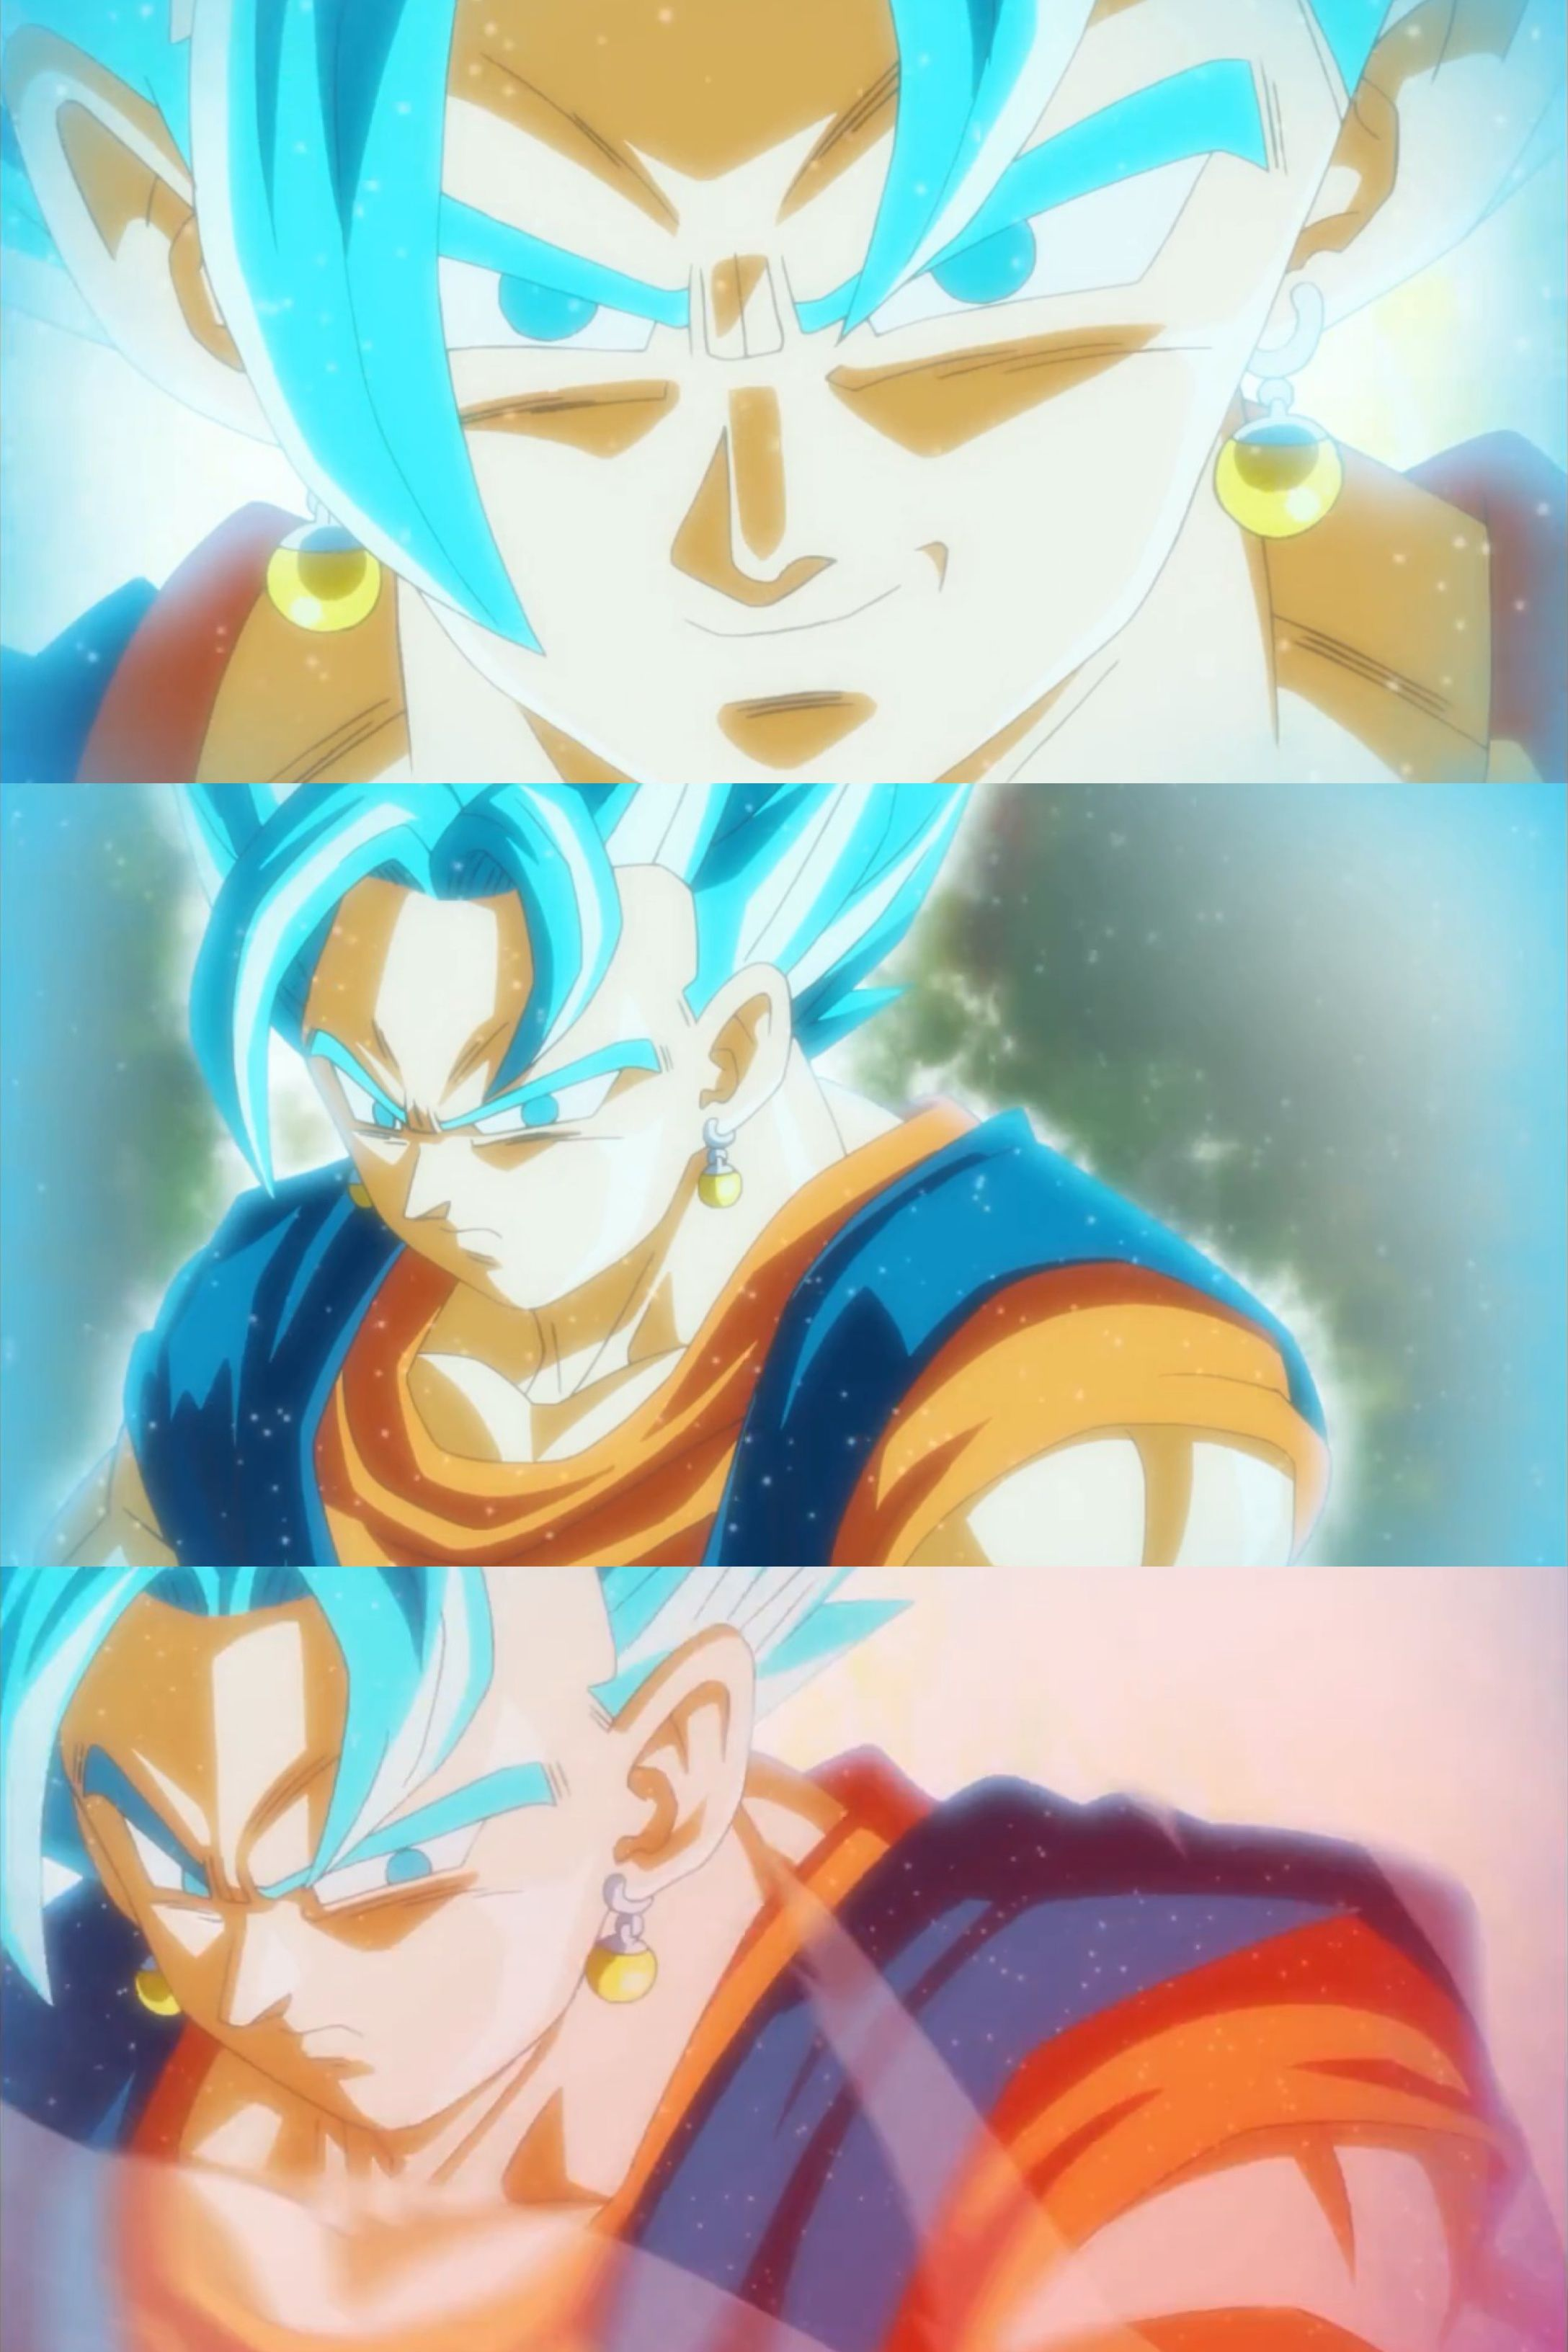 Vegito Blue! Dragon Ball Super IPhone Wallpaper for your